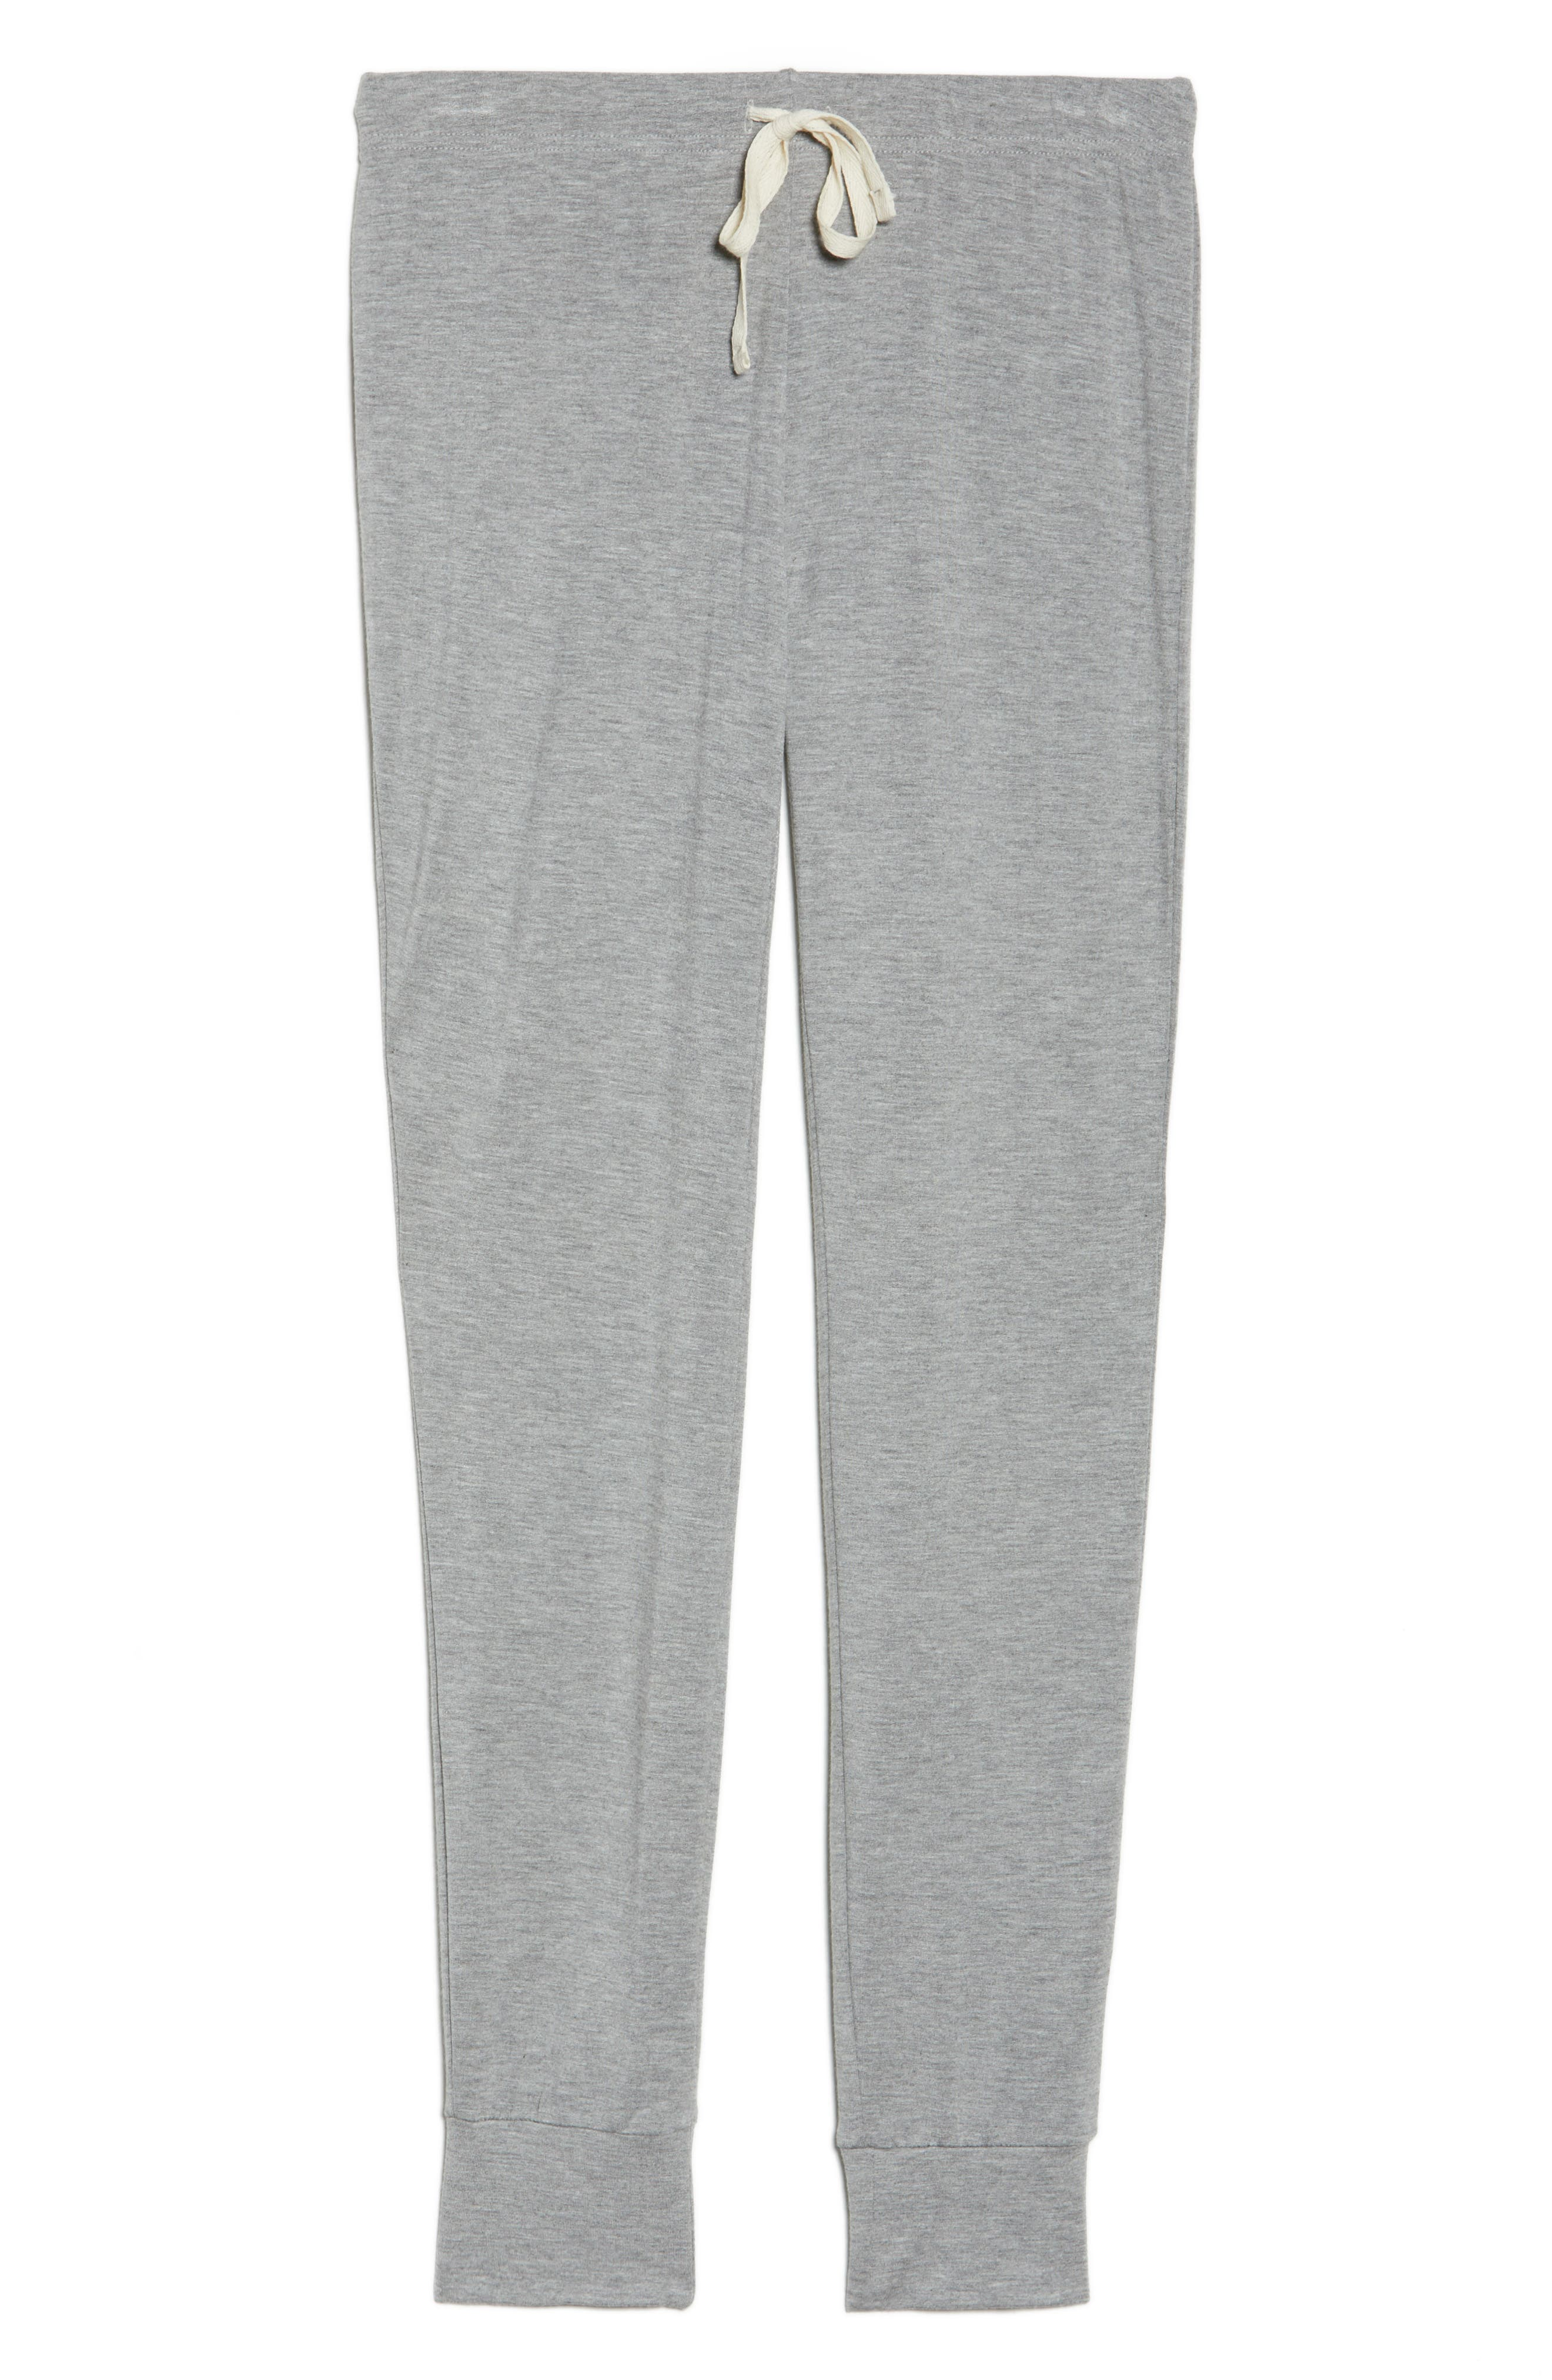 Kickin' It French Terry Lounge Pants,                             Alternate thumbnail 6, color,                             Heather Grey